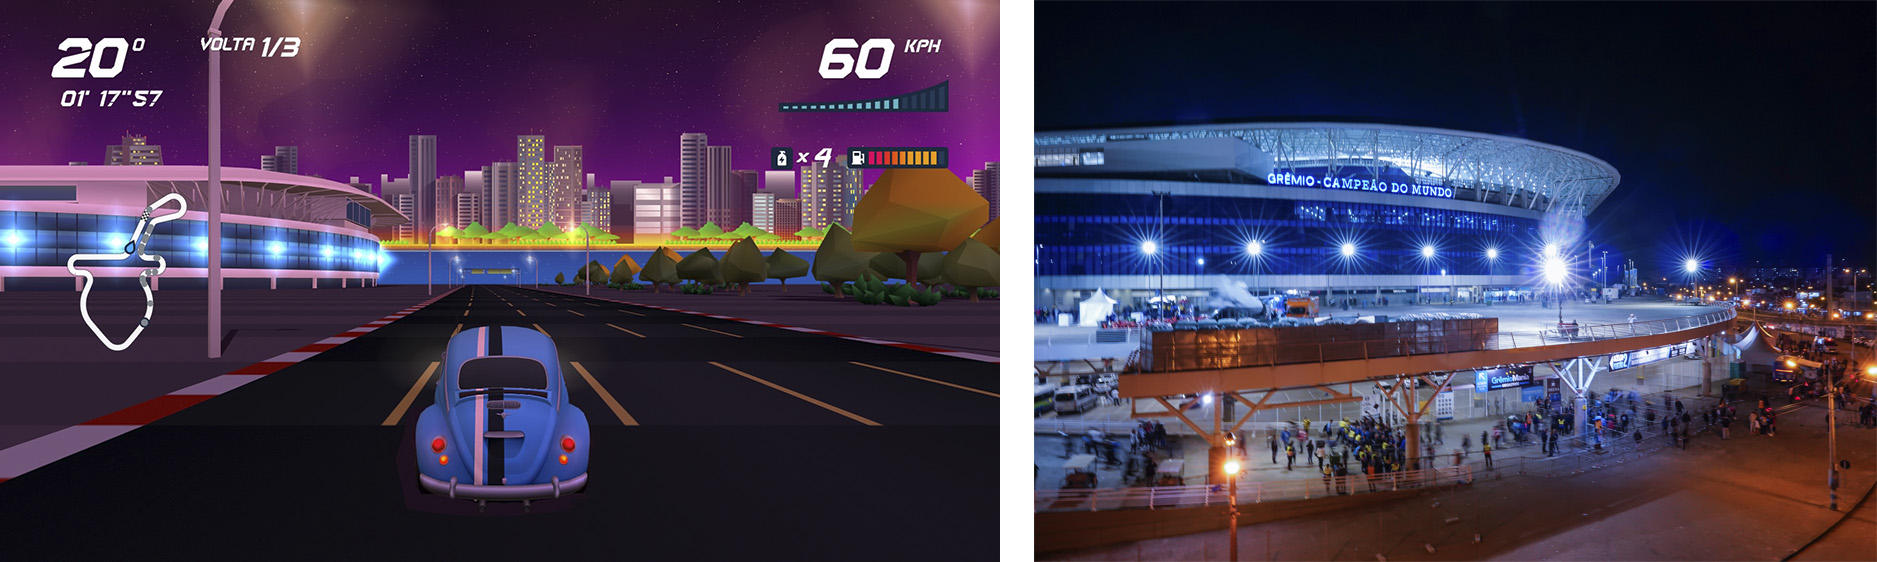 Horizon Chase Turbo – Devs Hometown - Arena do Grêmio